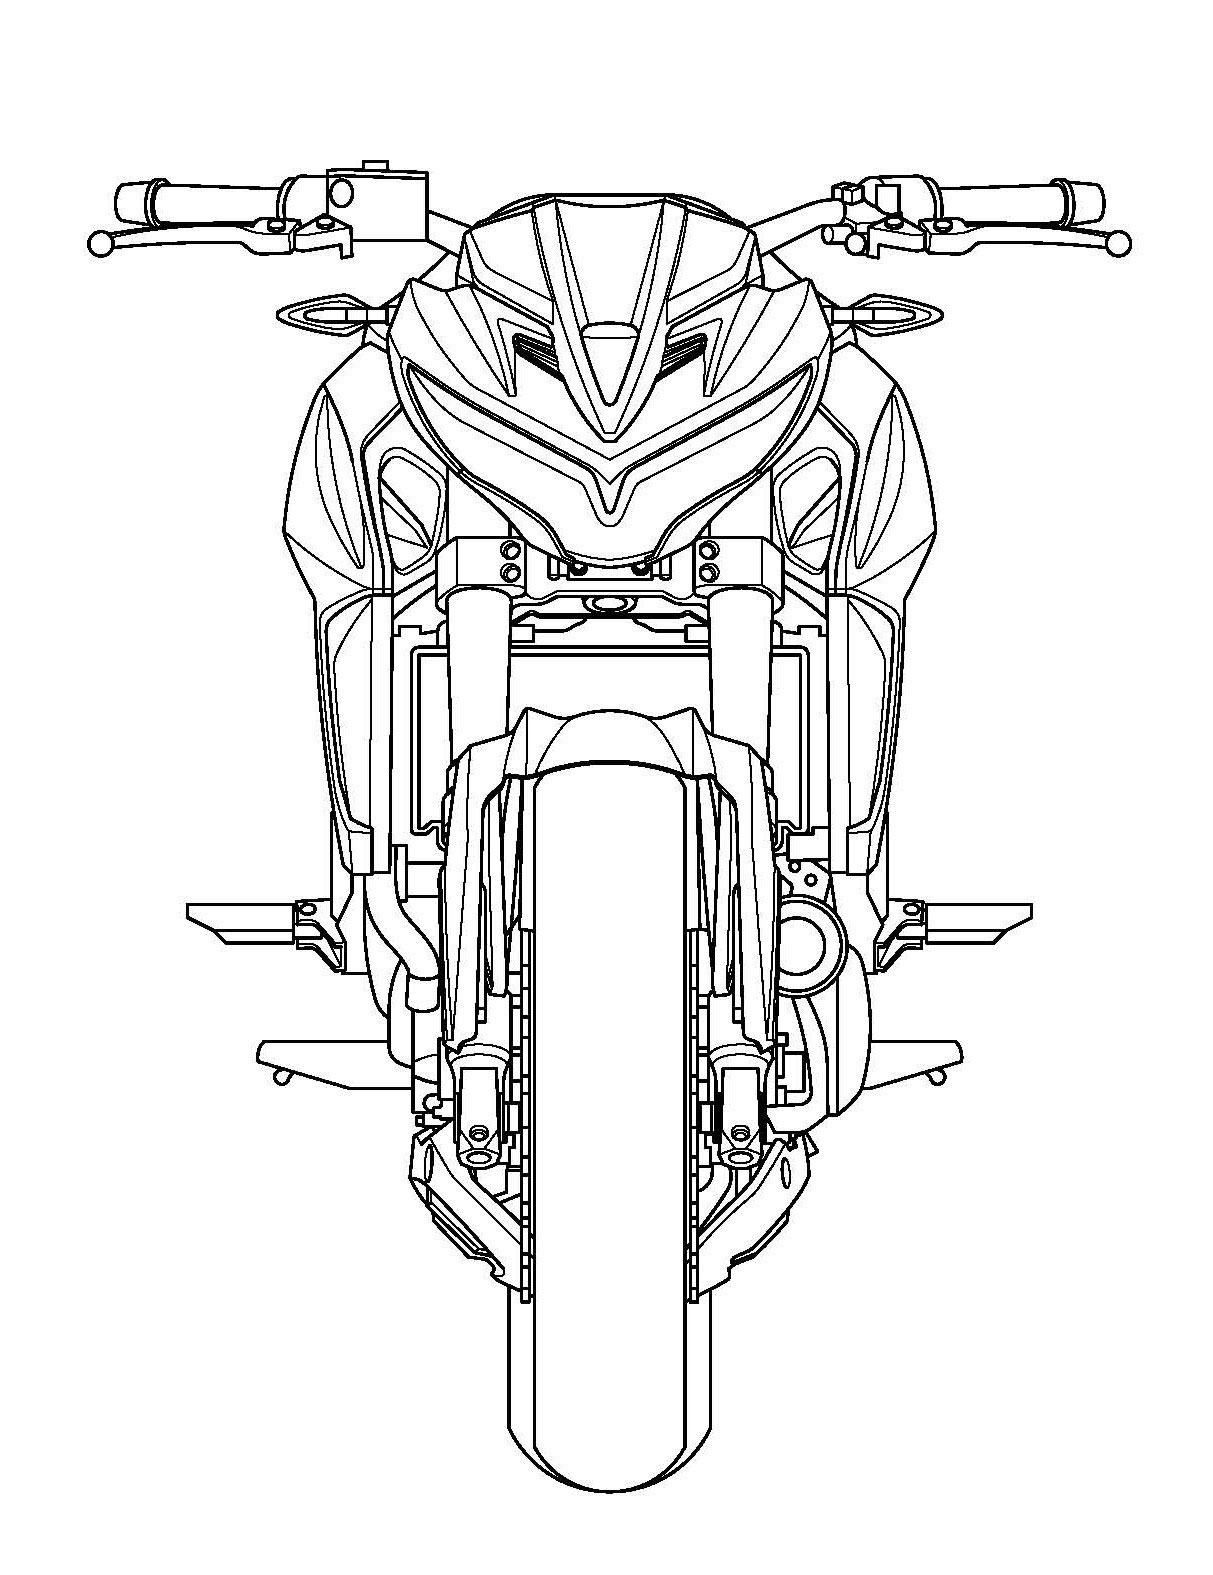 Kymco Patents its Version of Kawasaki ER-6n